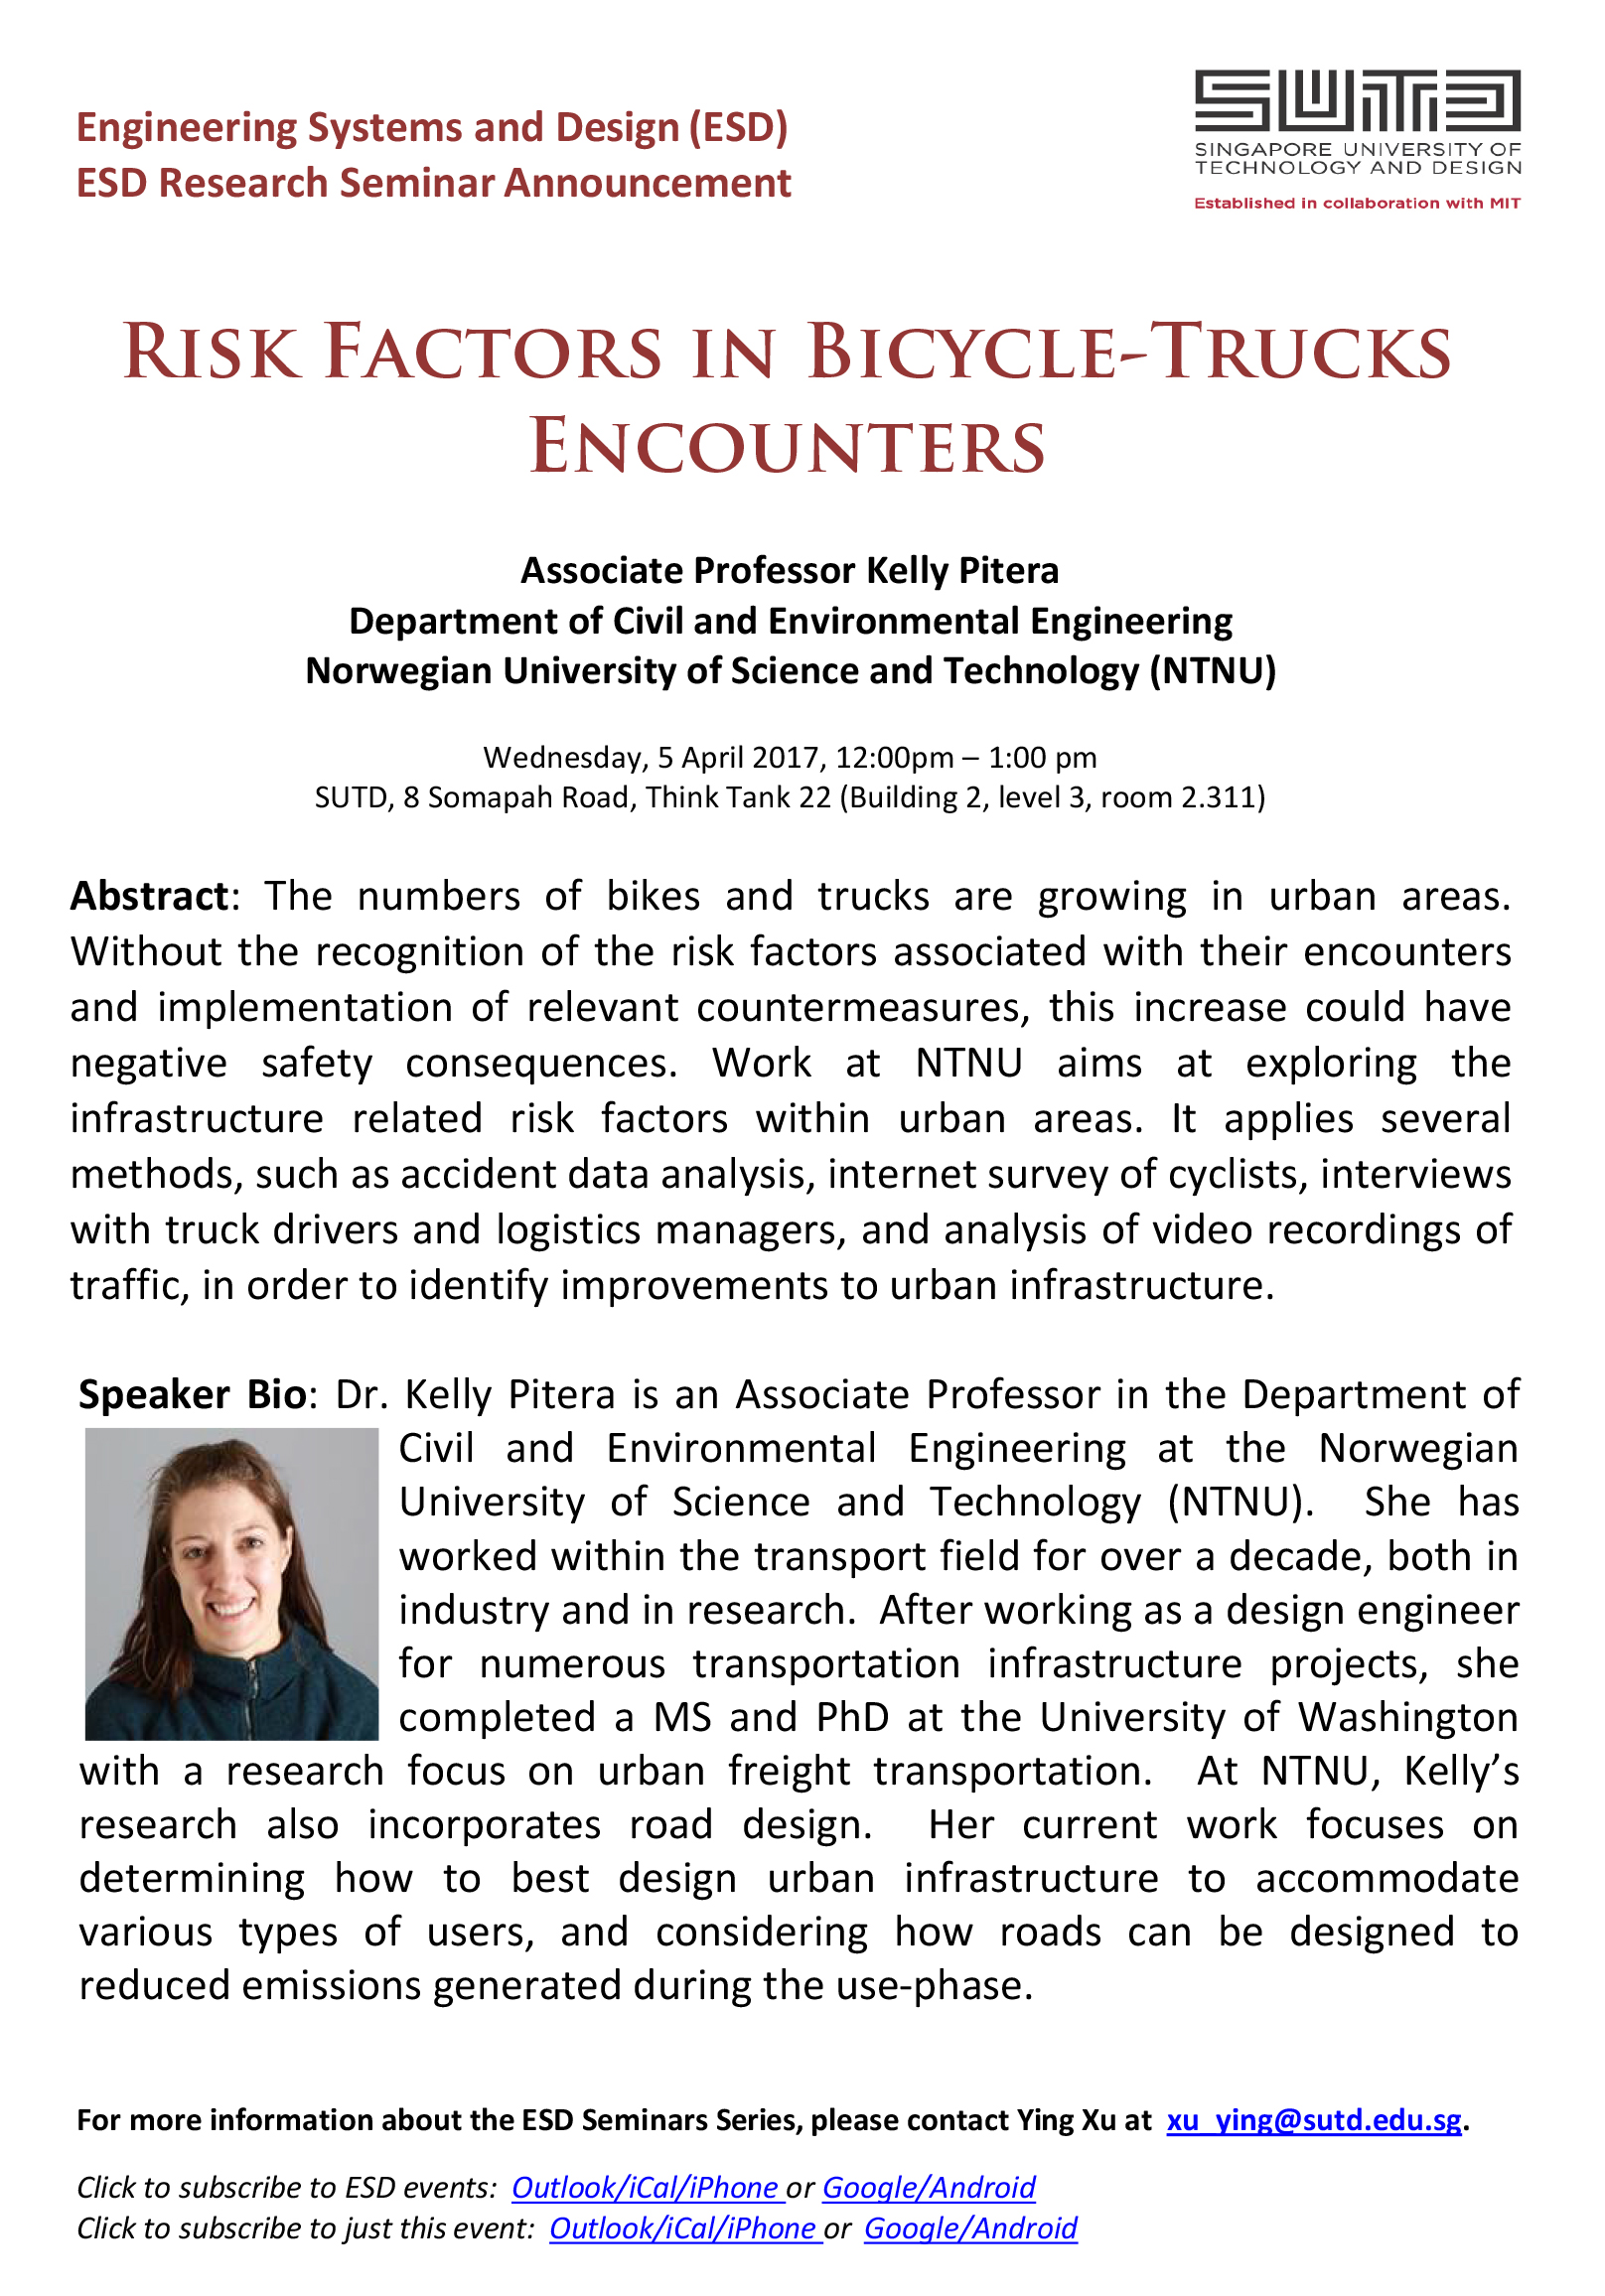 Assoc. Prof. Kelly Pitera - Risk Factors om Bicycle-Trucks Encounters